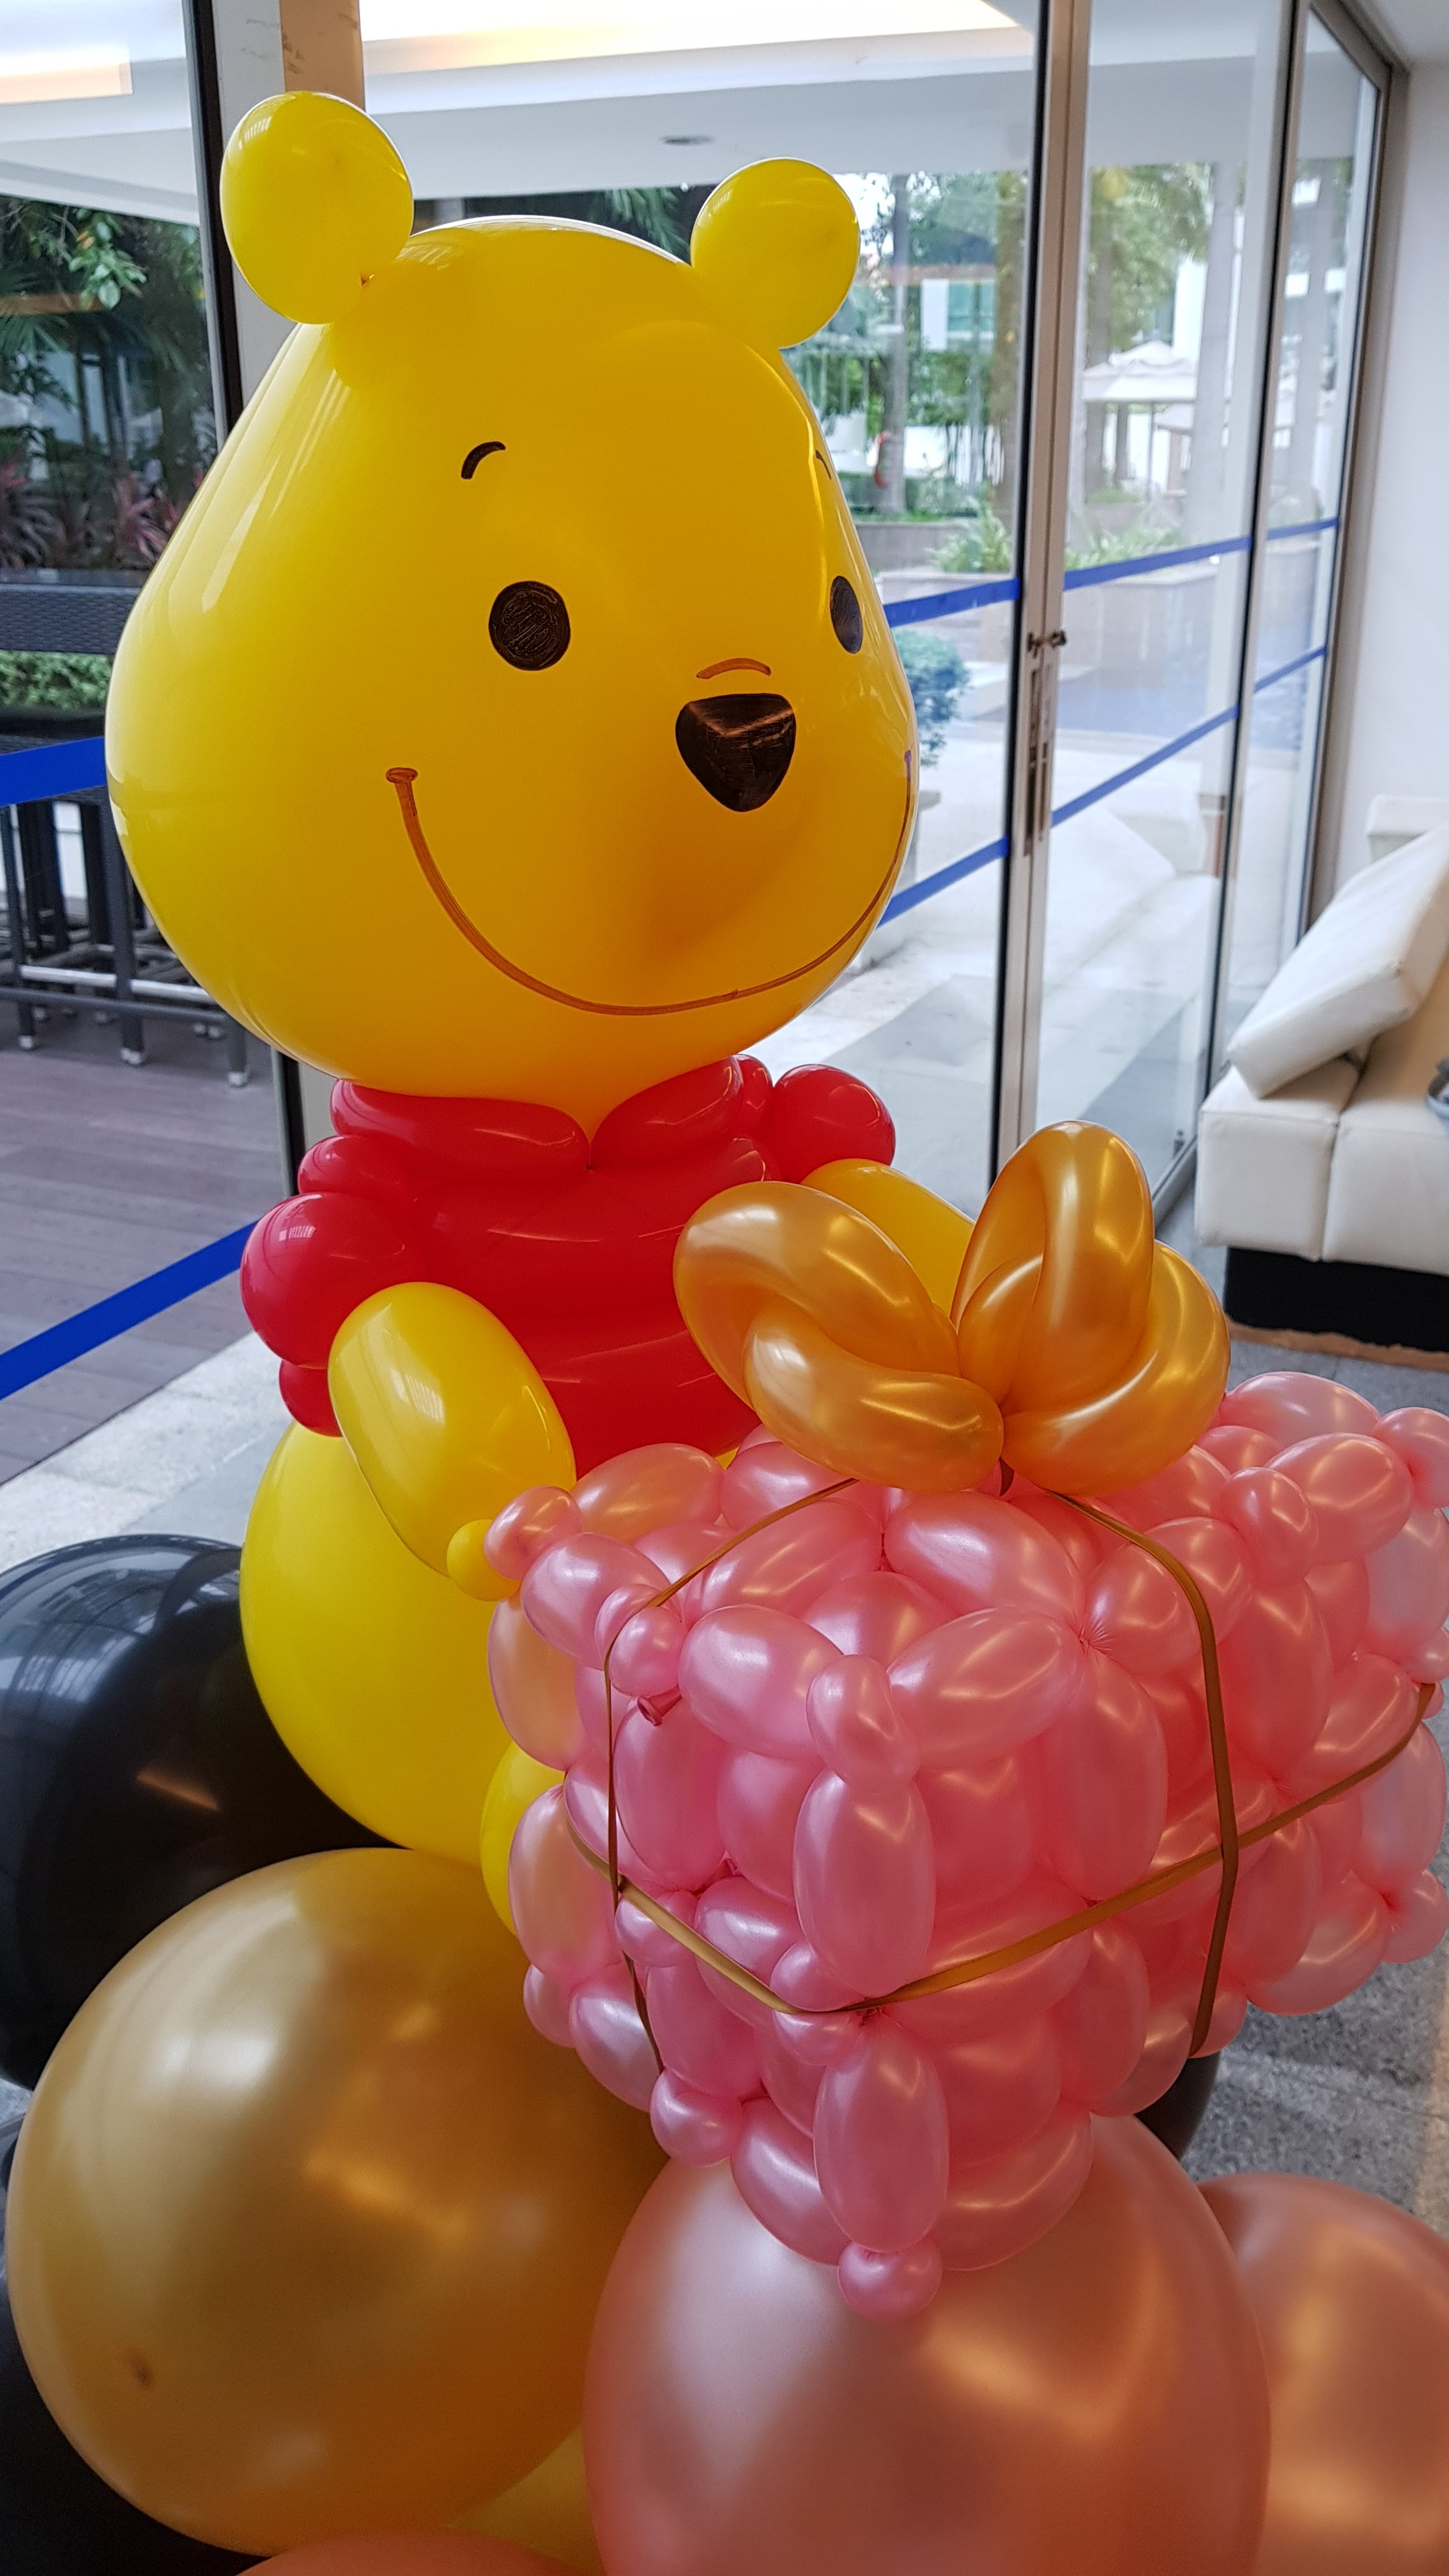 , Winnie the pooh balloon display!, Singapore Balloon Decoration Services - Balloon Workshop and Balloon Sculpting